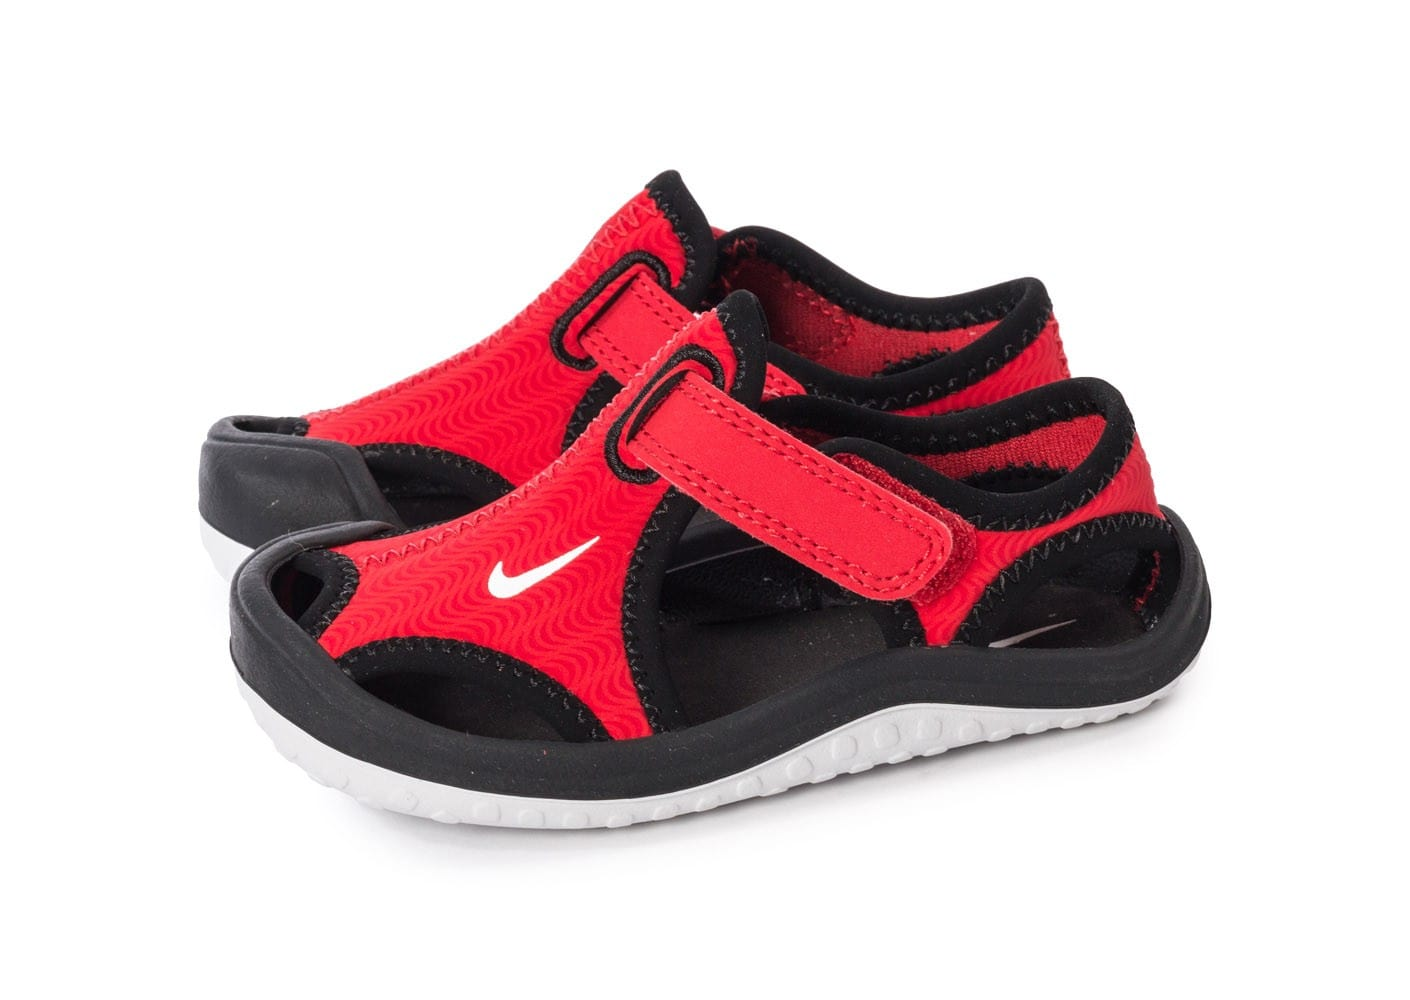 save off 52d2e 62dff Nike Sunray Protect Bébé rouge - Chaussures Chaussures .